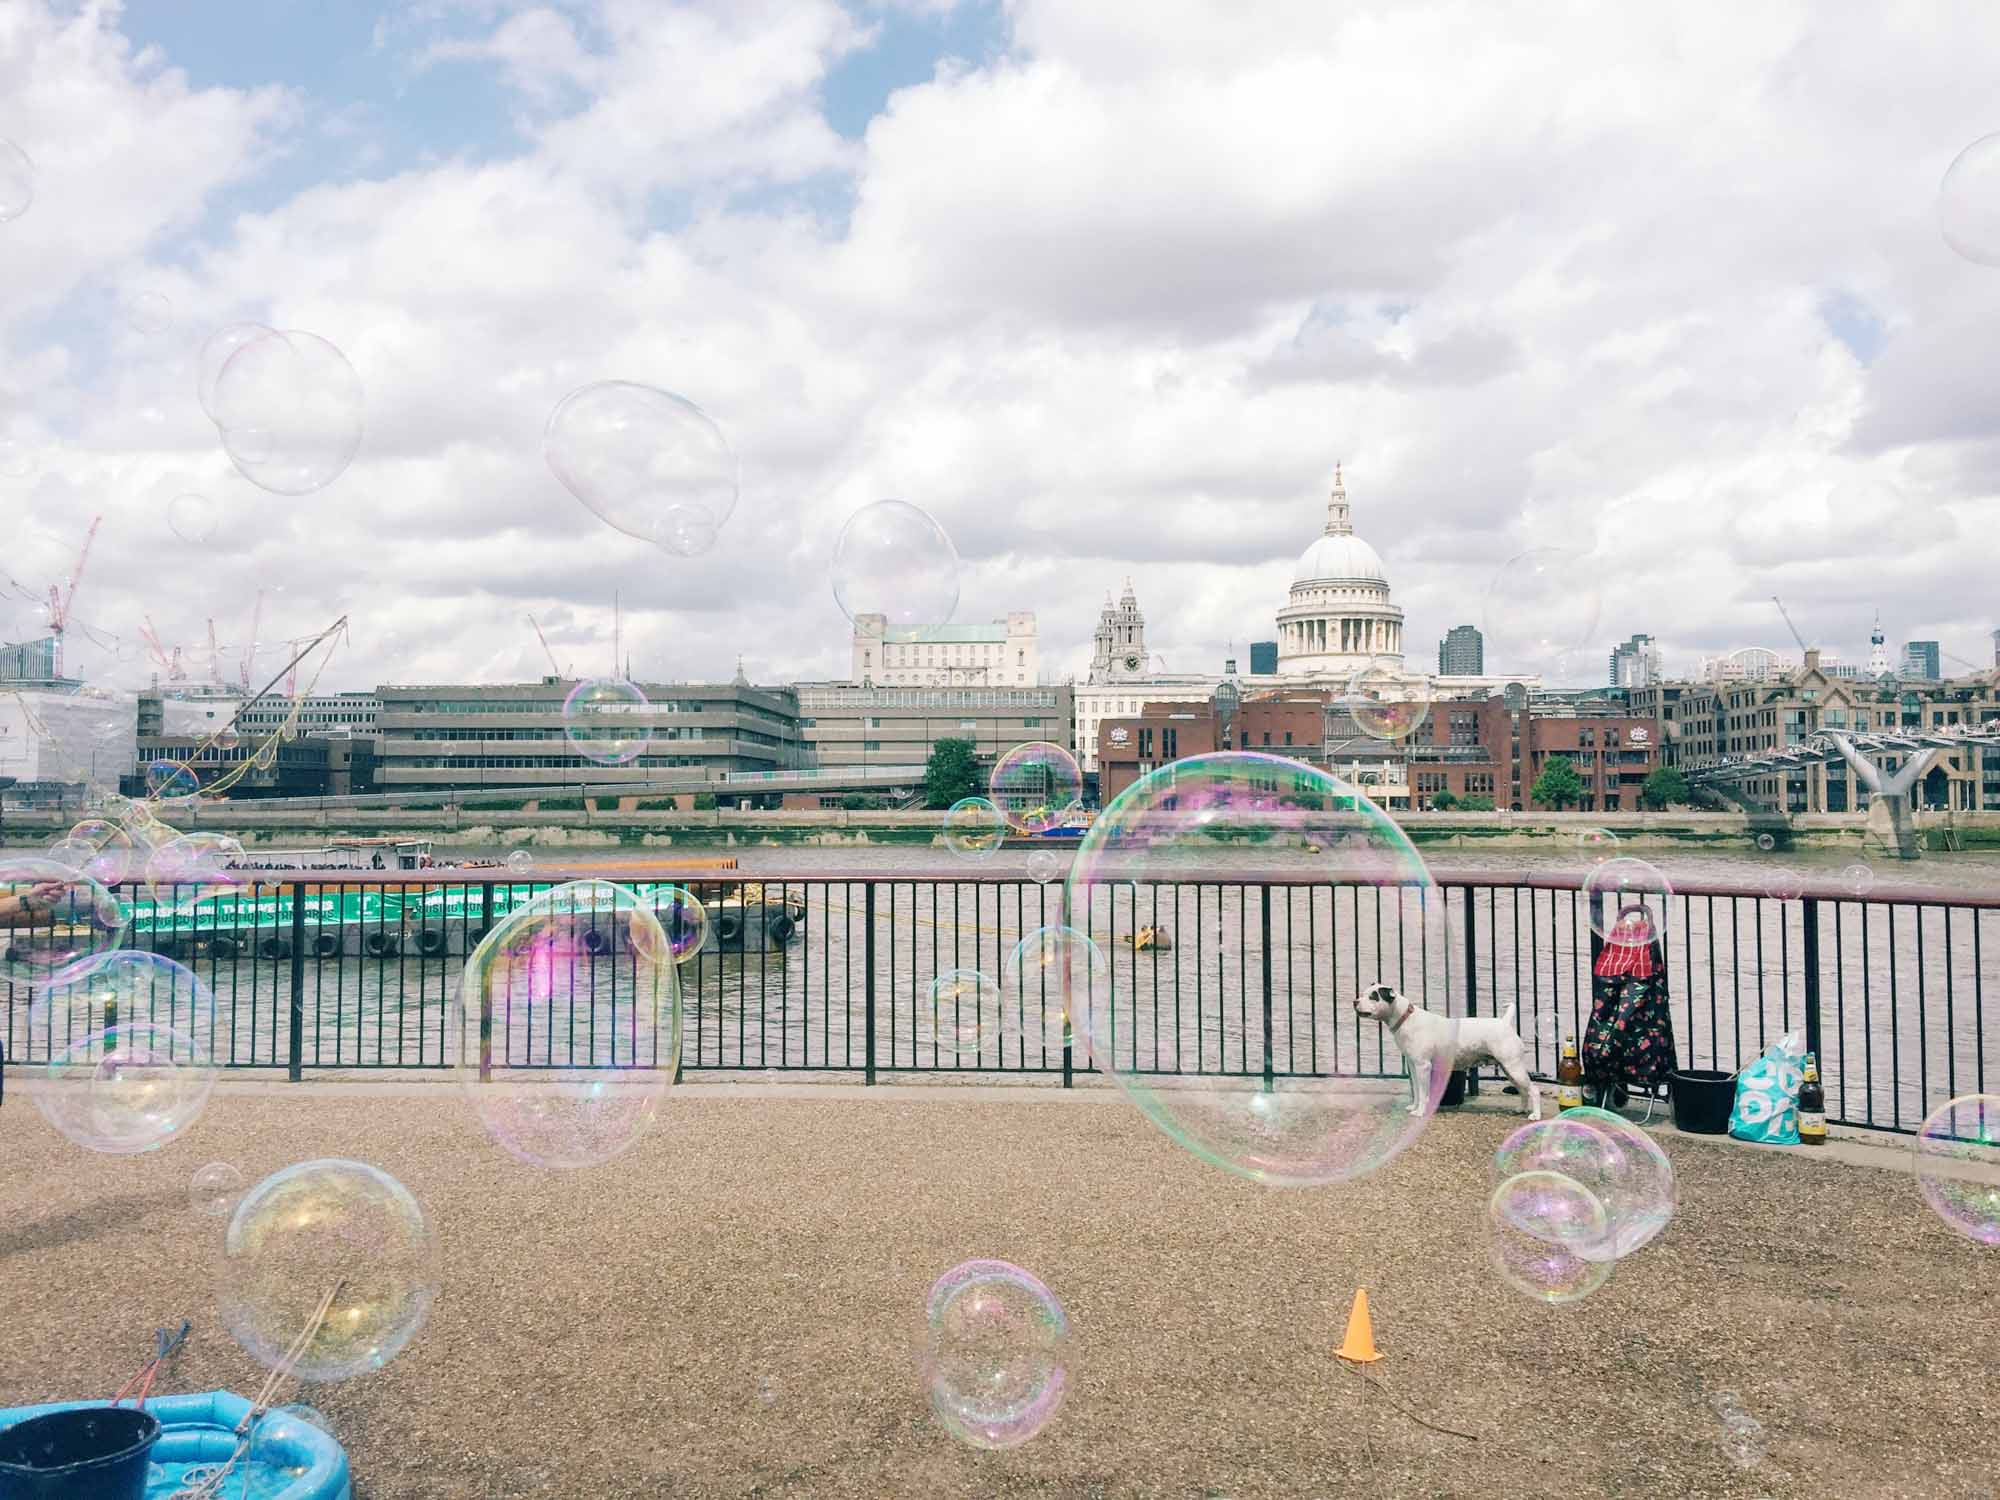 Best views in London - South Bank